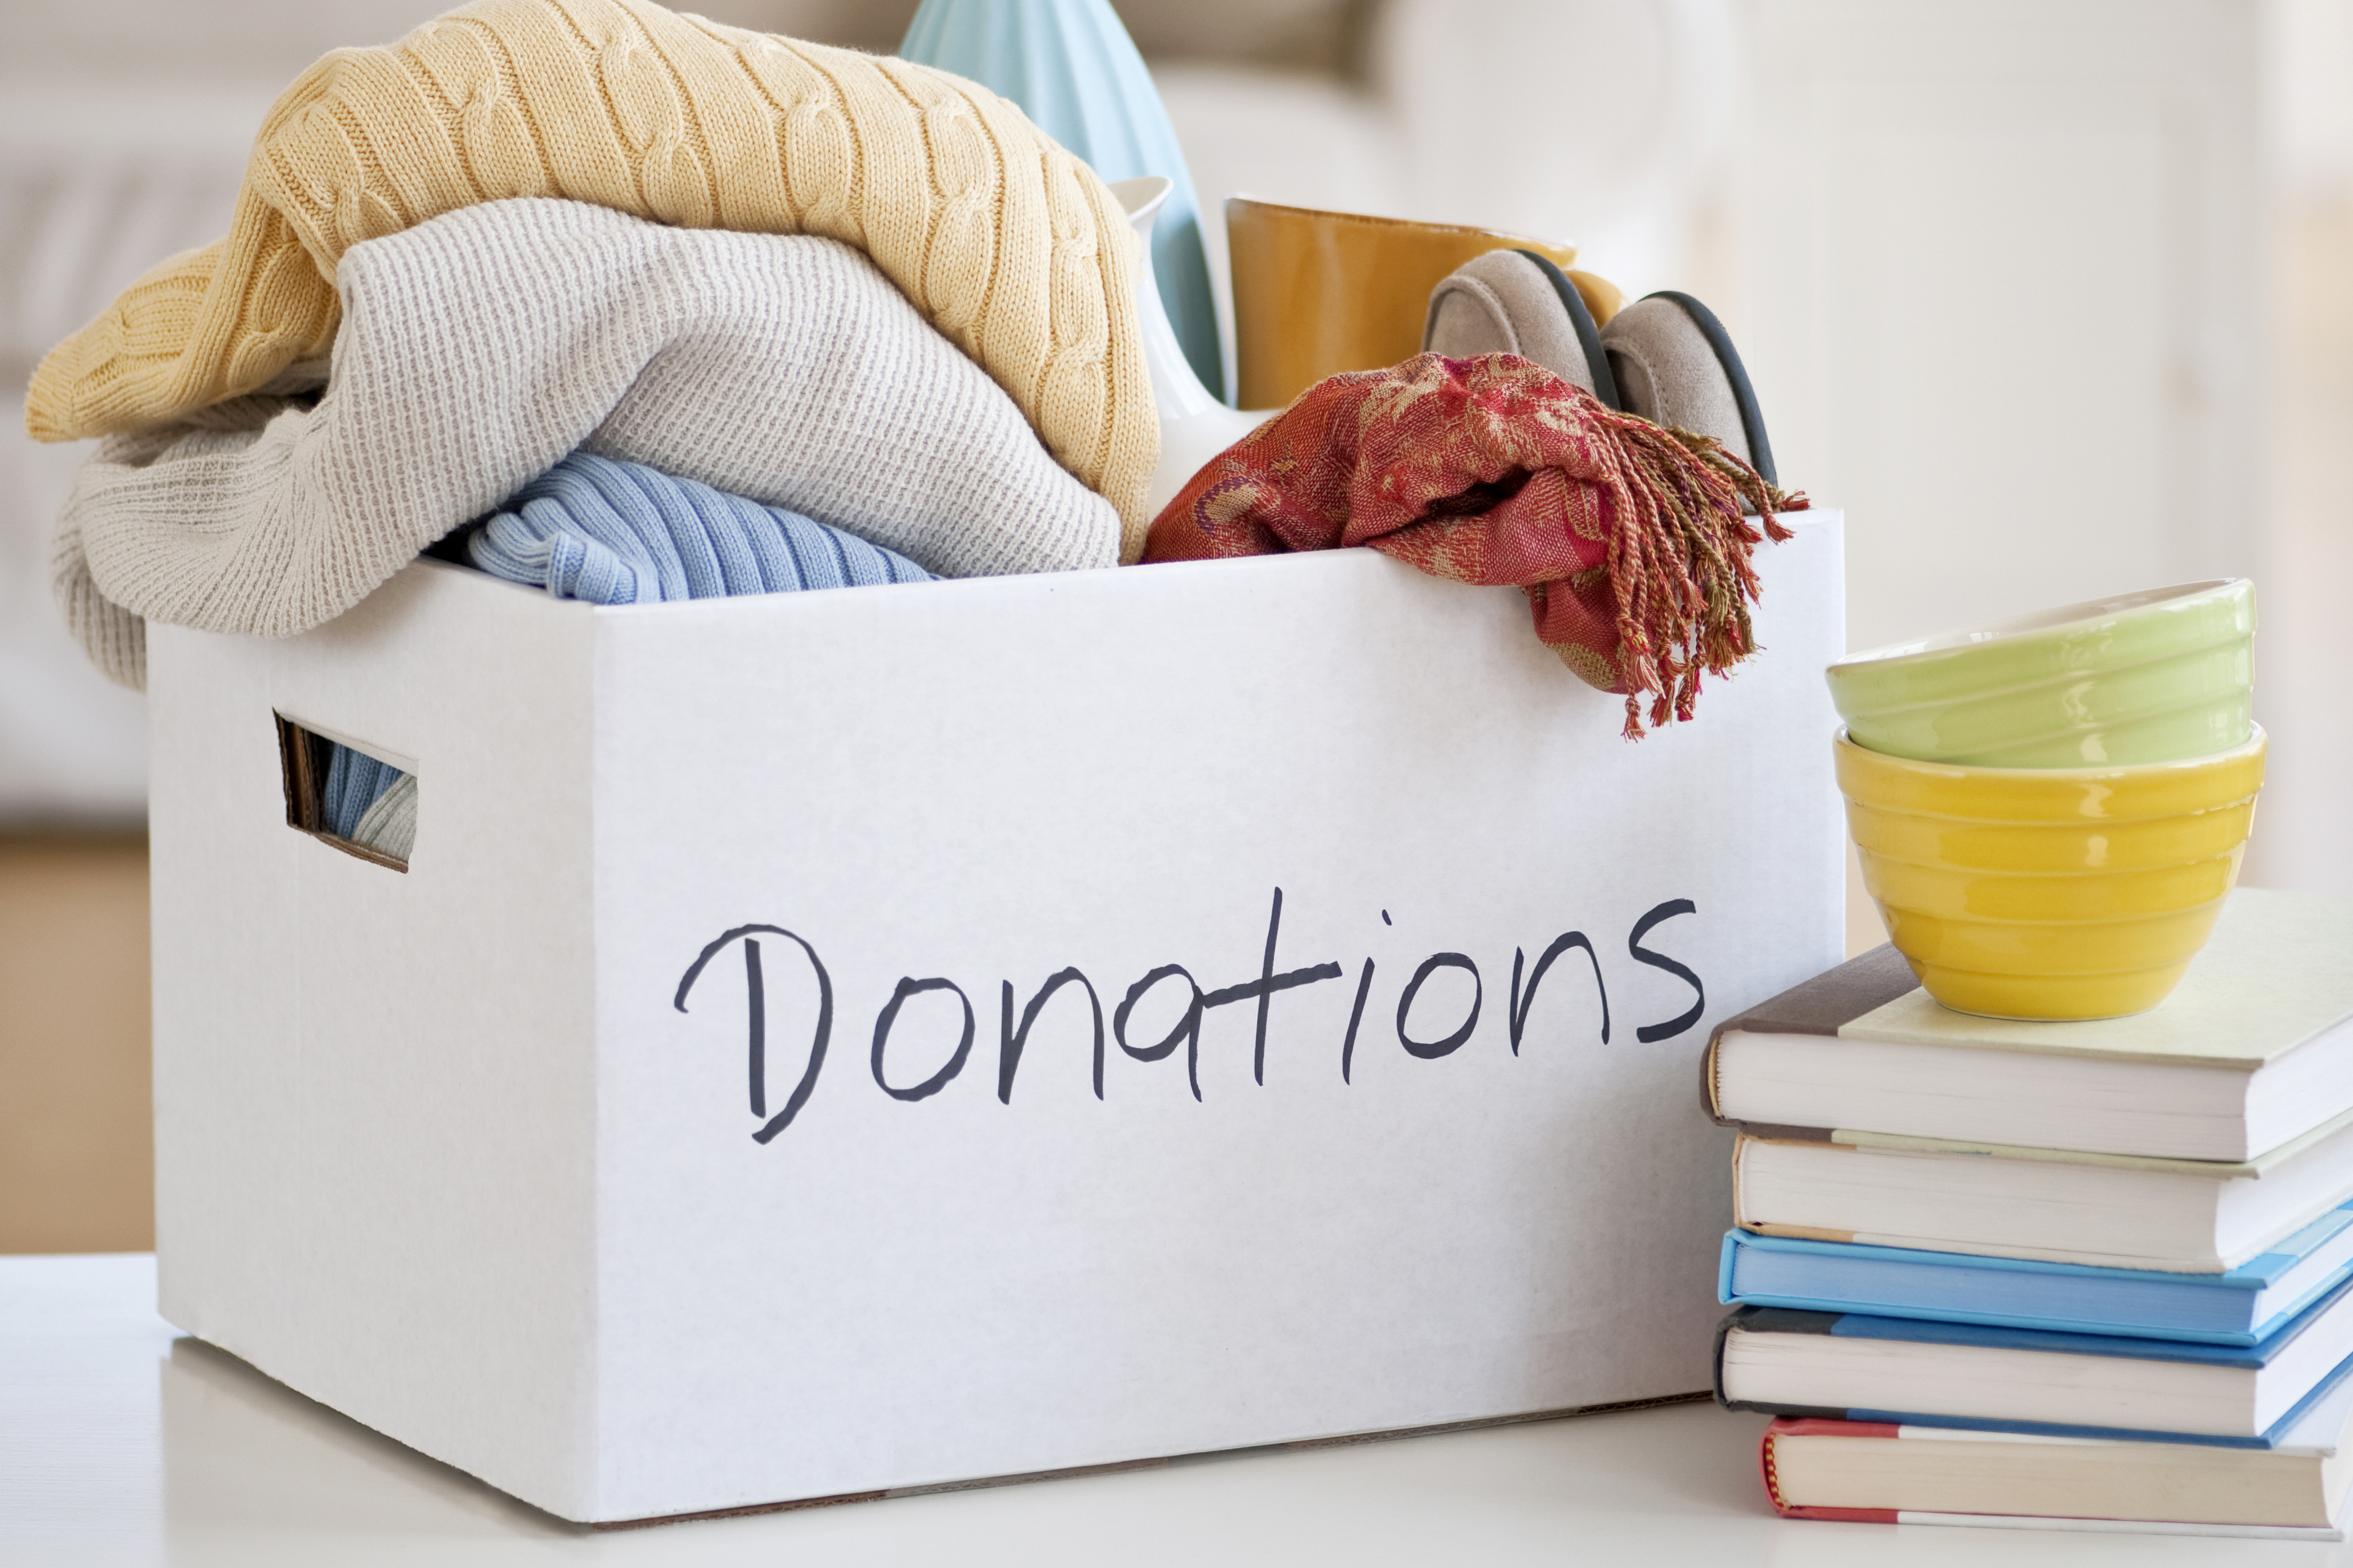 4 Places to Donate Household Items to Charity Locally | LoveToKnow